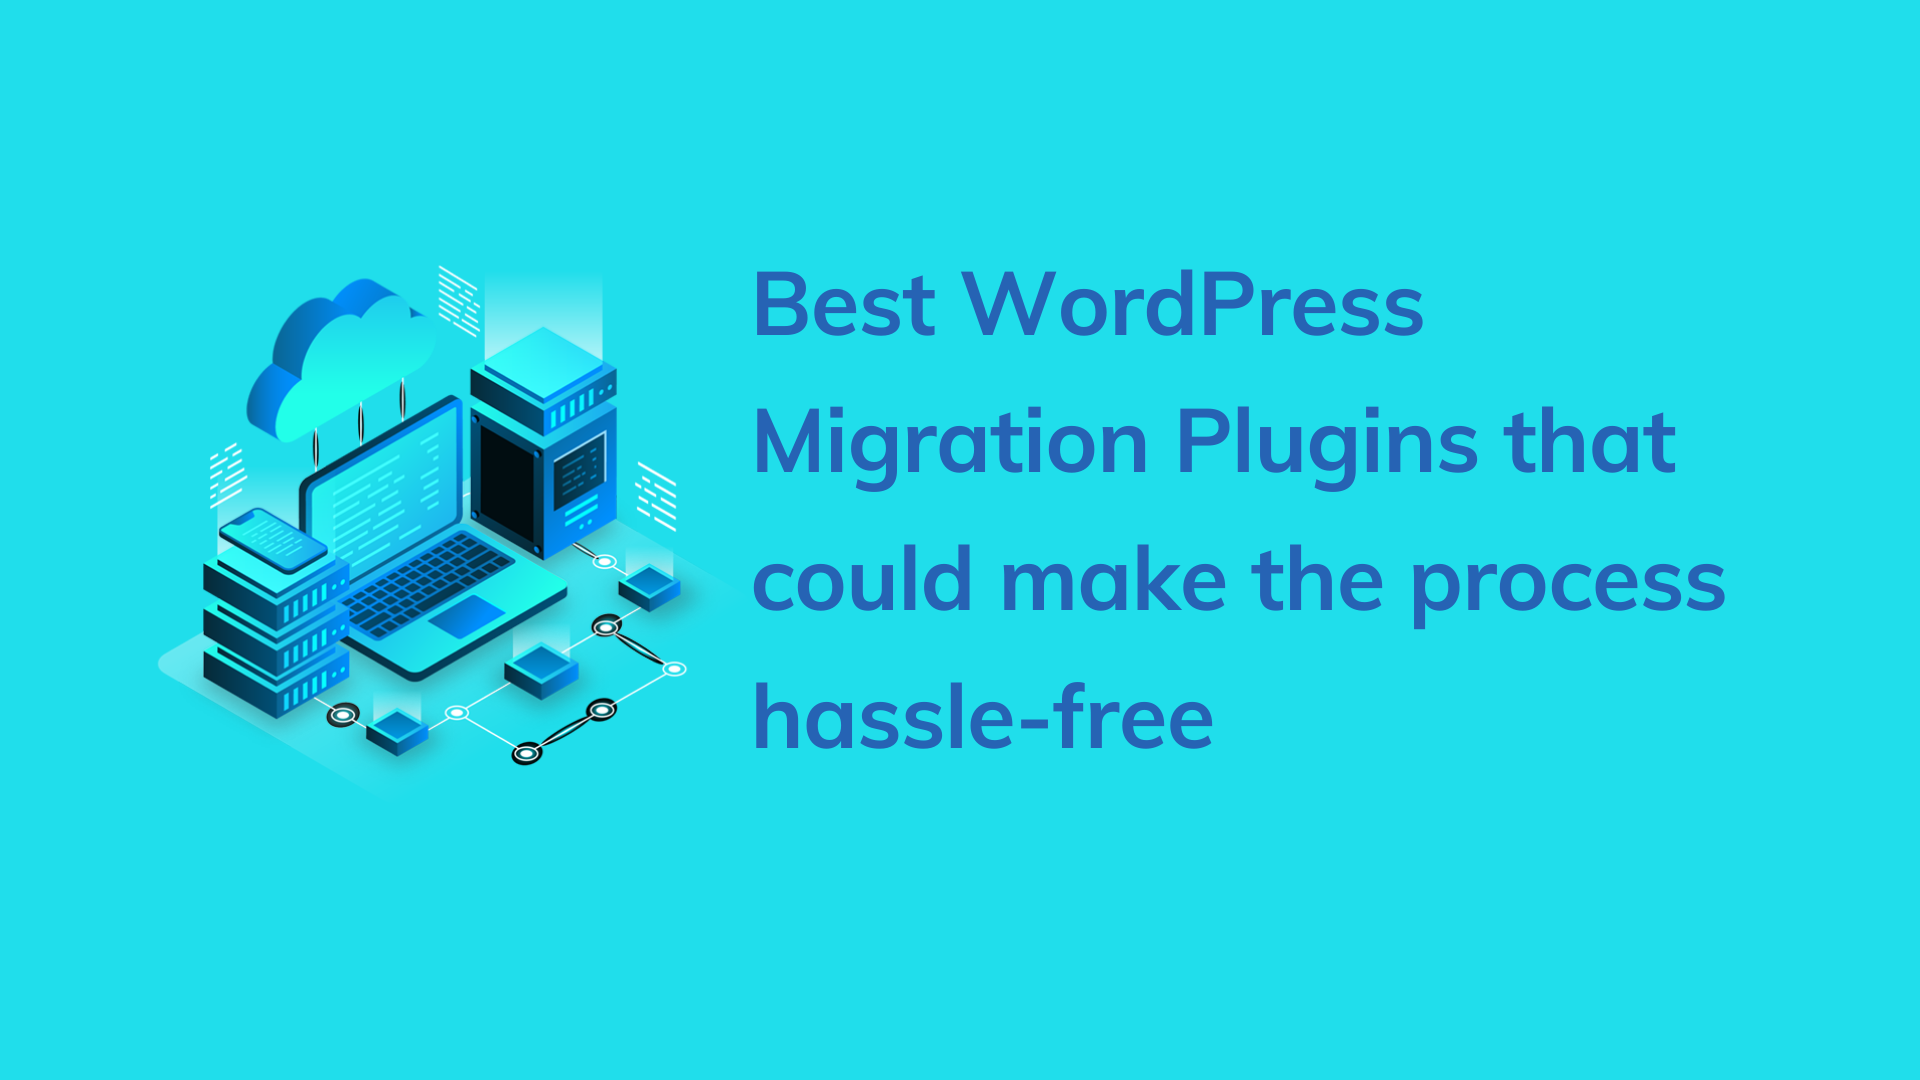 Best WordPress Migration Plugins that could make the process hassle-free